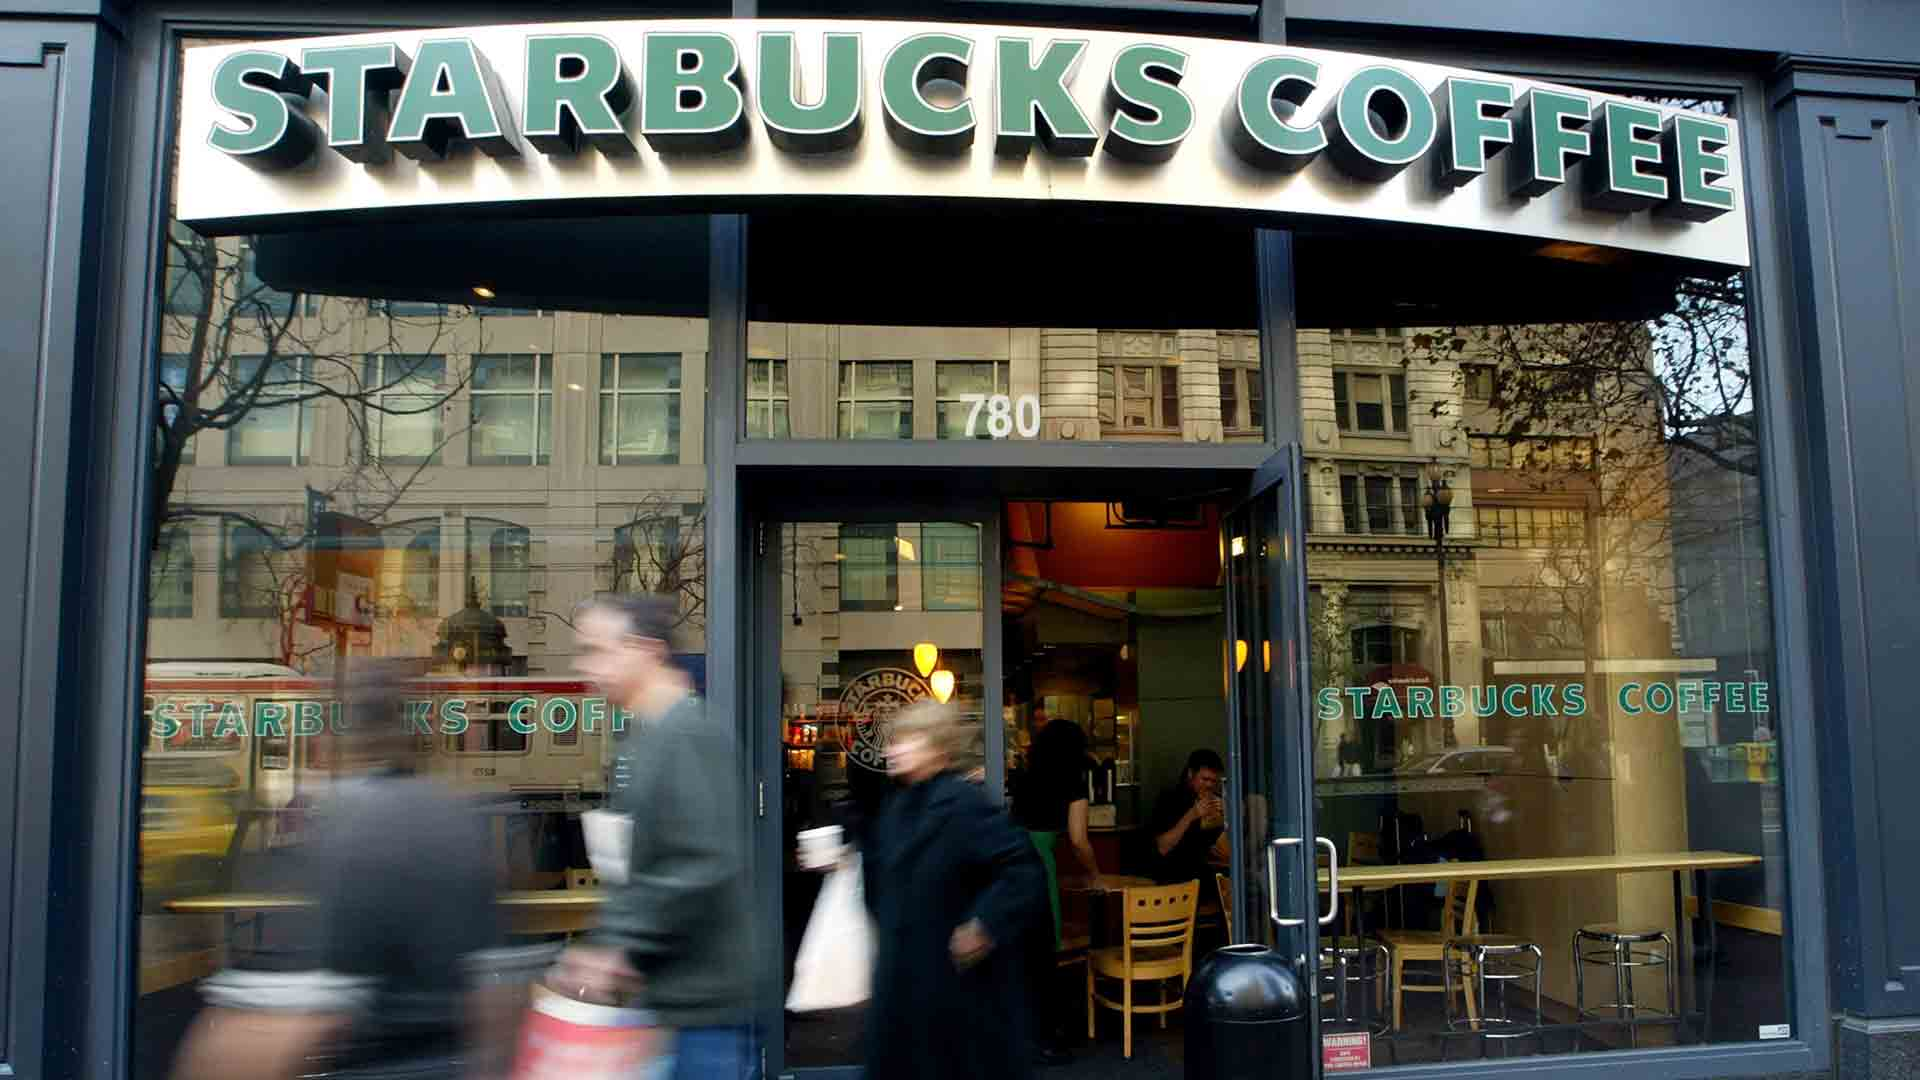 People walk out of a Starbucks coffee shop January 22, 2004 in San Francisco. (Credit: Justin Sullivan/Getty Images)